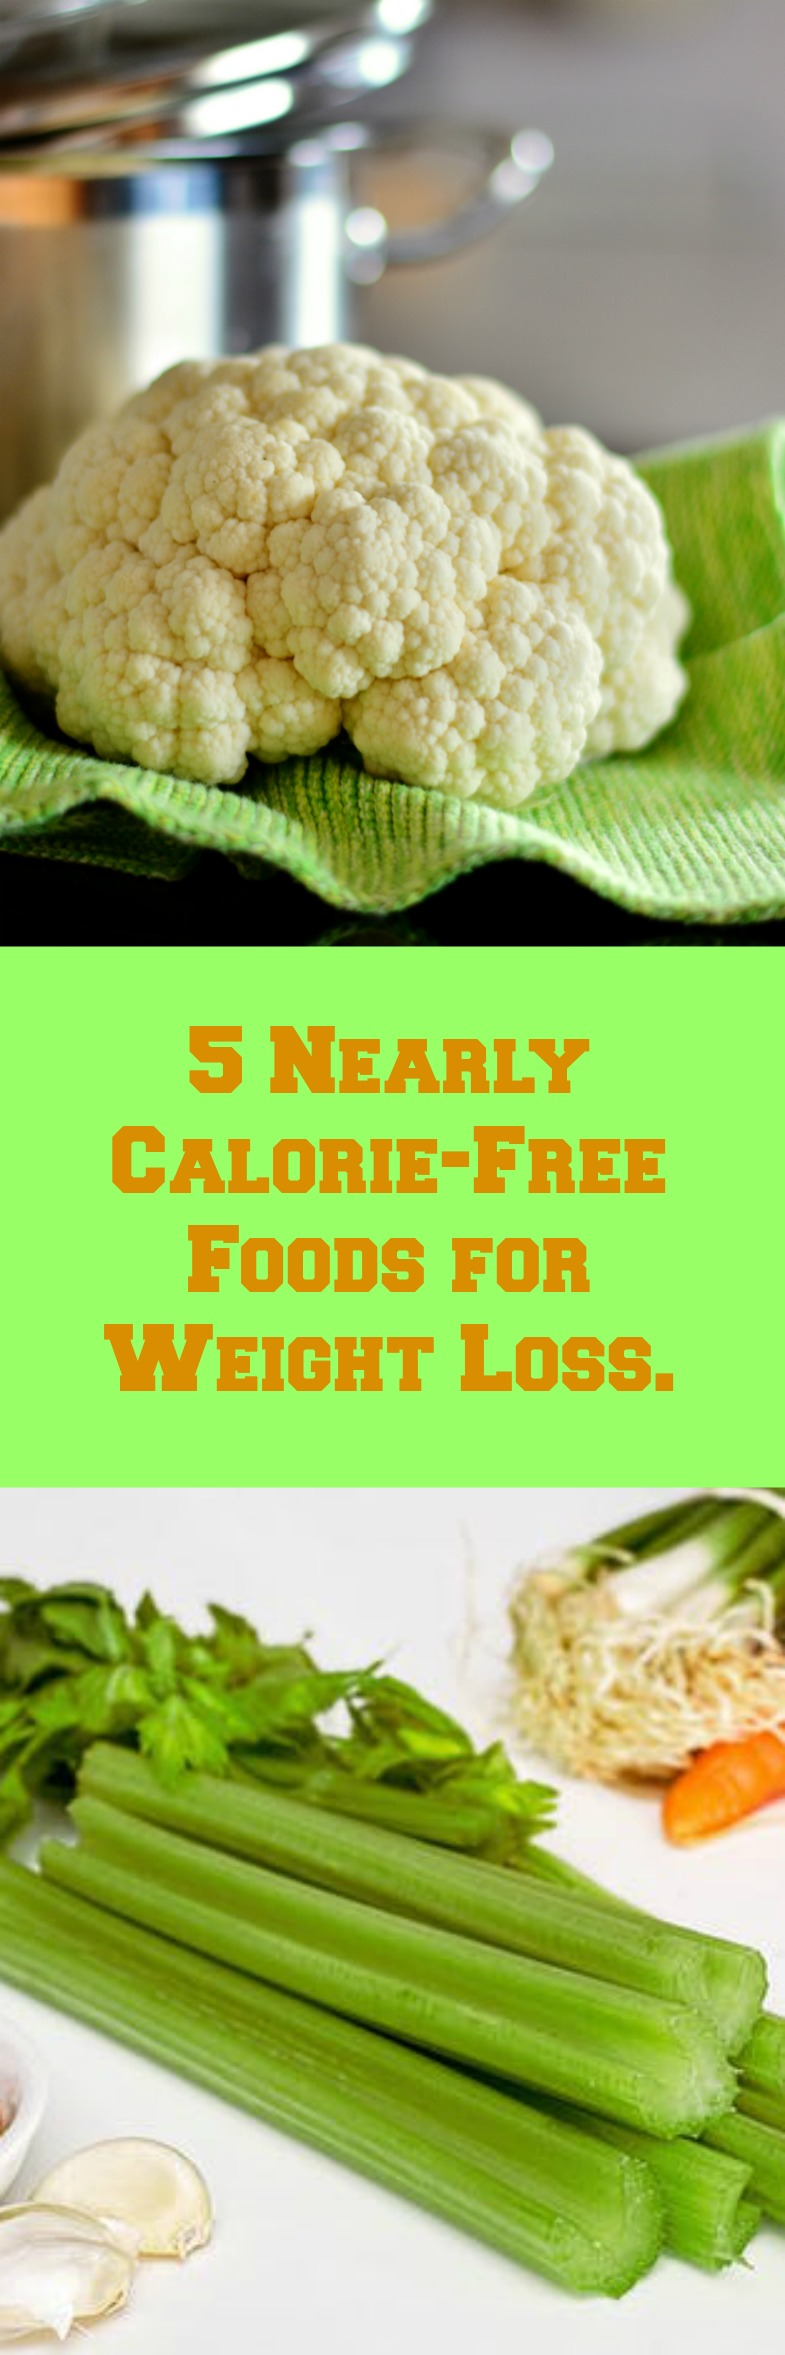 Start the fall season the right way by choosing 5 Nearly Calorie-Free Foods for Weight Loss. These are your